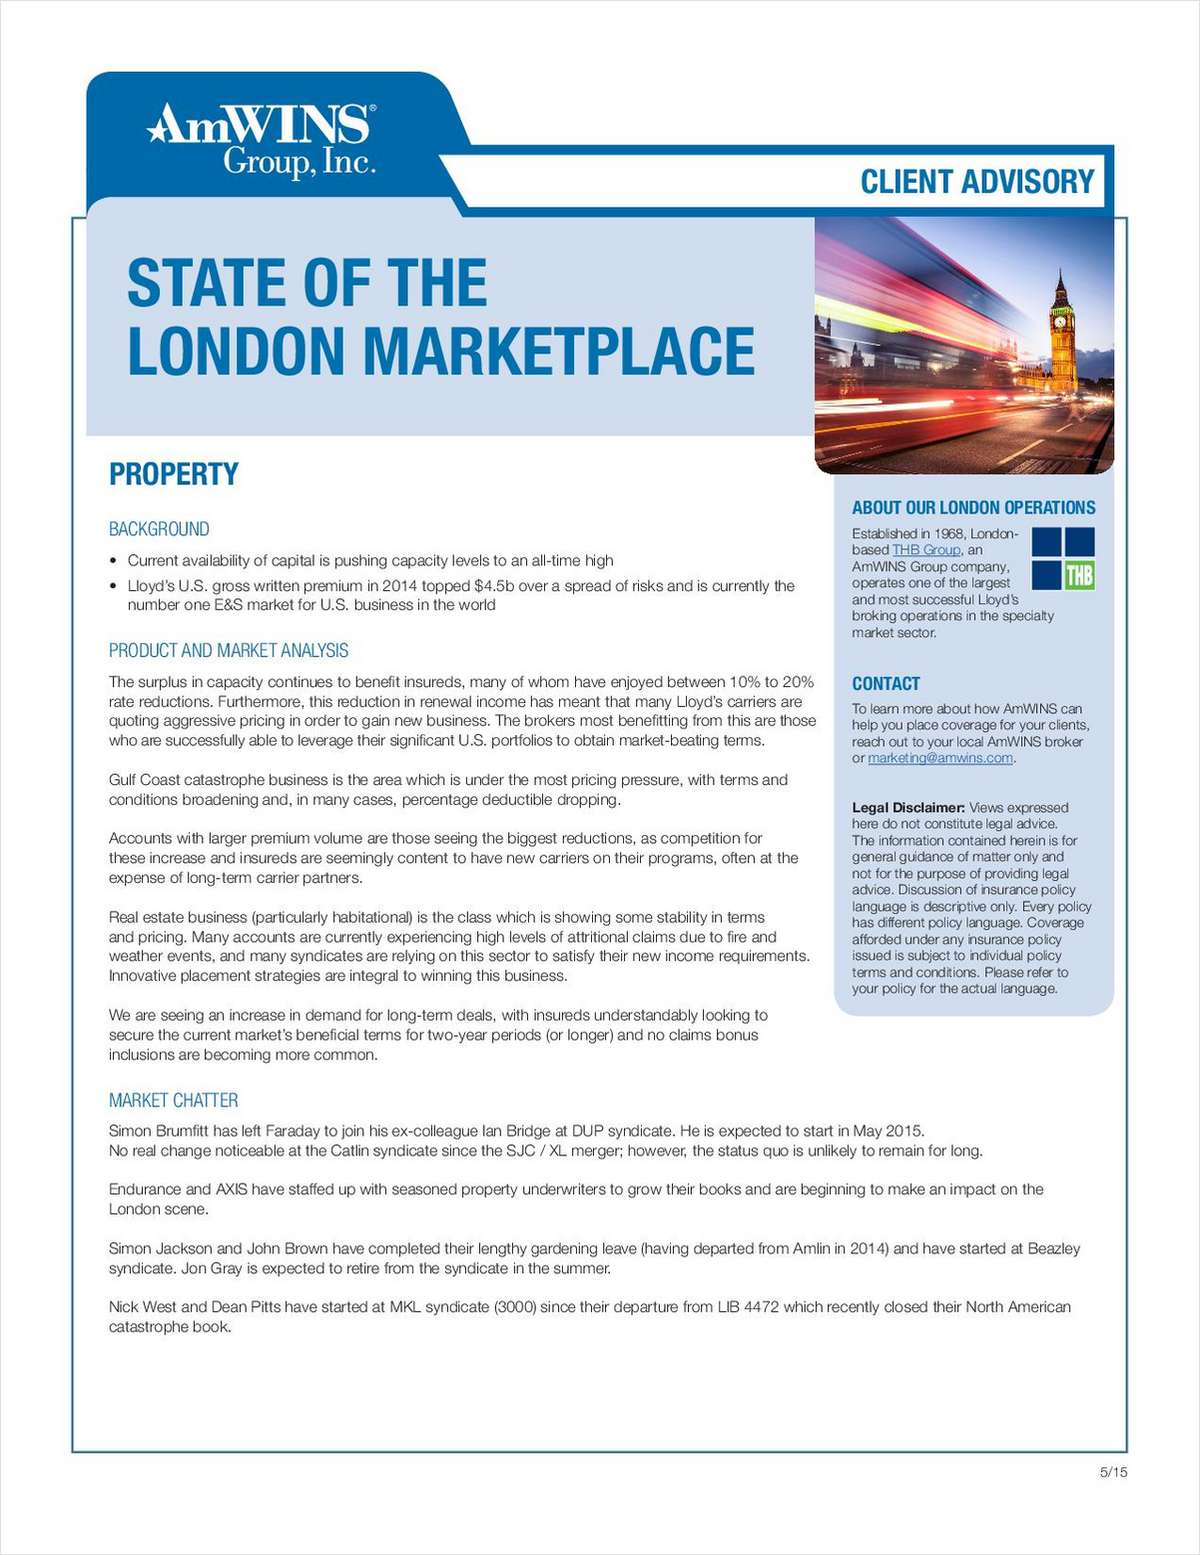 Client Advisory: The State of The London Marketplace